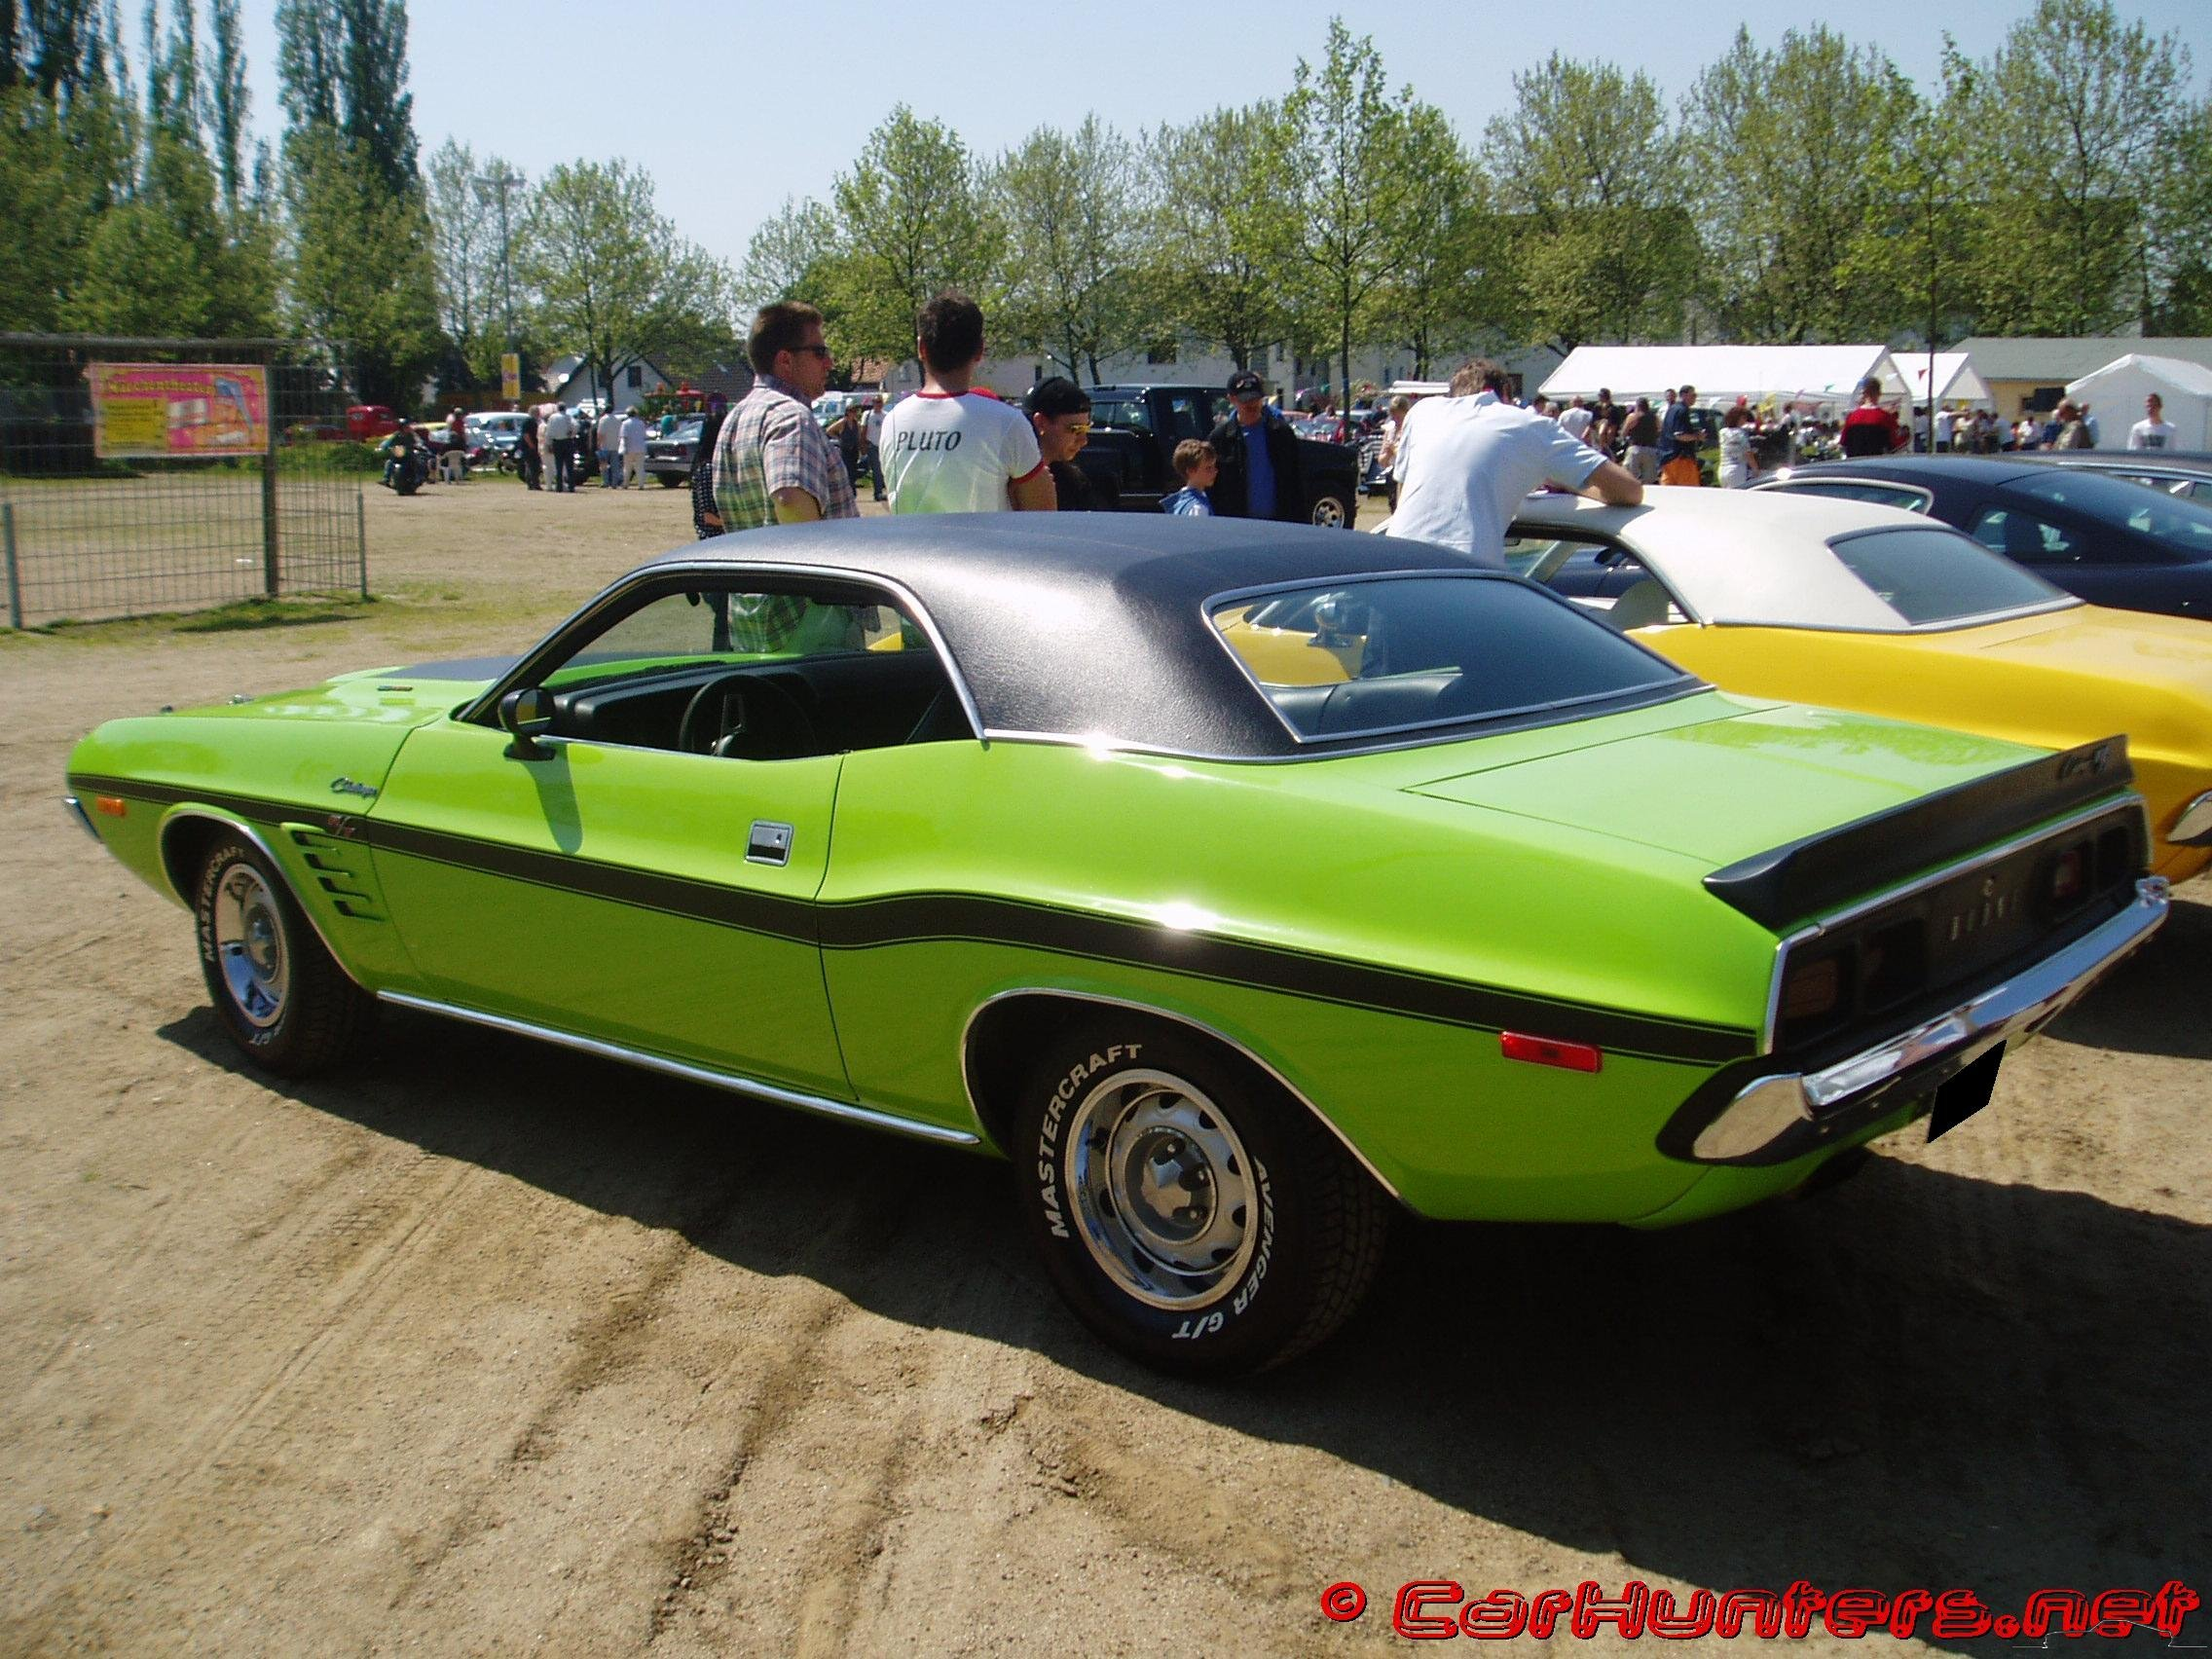 Amazing 73 Dodge Challenger Parts  U2013 Aratorn Sport Cars